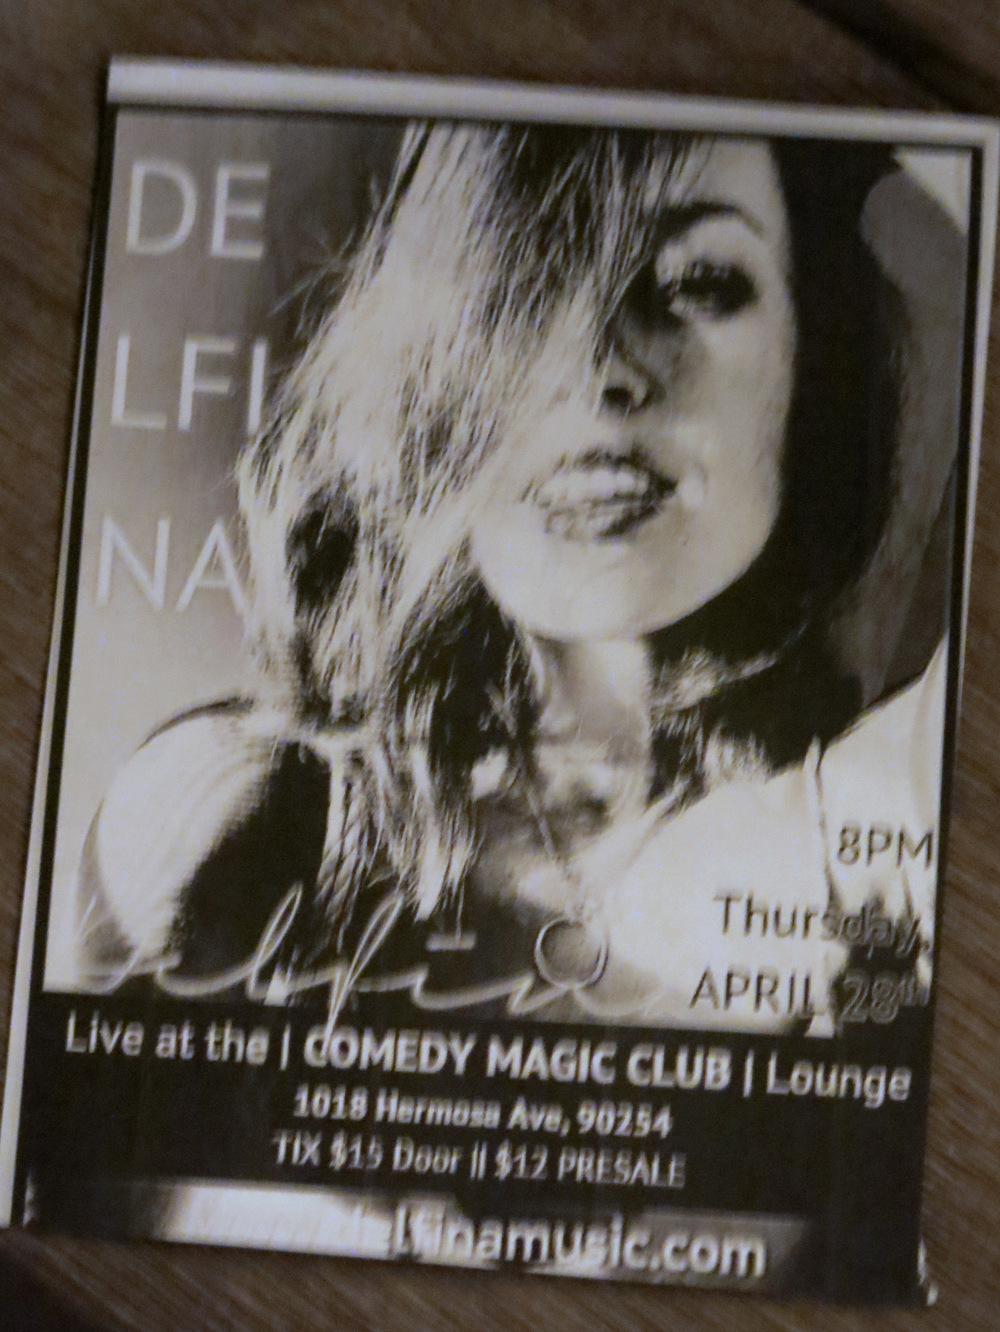 Acoustic guitarist & vocalist  Delfina  performed beautiful and touching songs she composed in honor of animals, including one about a mother cow and her baby who are separated shortly after birth because the mother's milk is taken away to give to humans. We were so moved the music that we forgot to snap a pic, but here's a flyer for one of her upcoming performances.